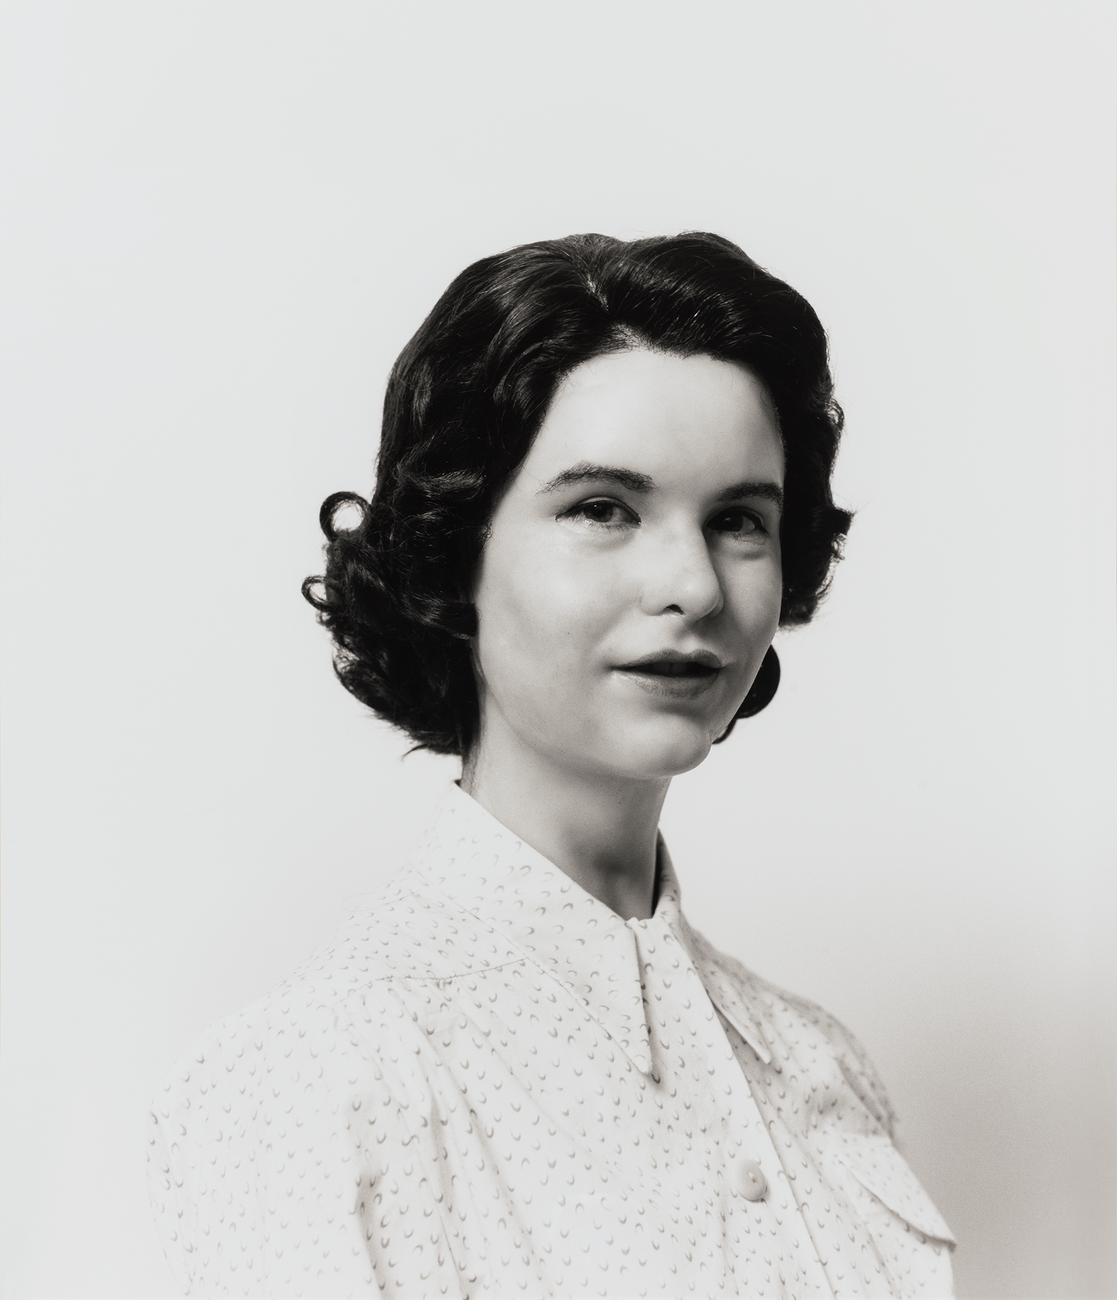 An uncanny black and white photograph of a white woman with 1950's style hair and blouse